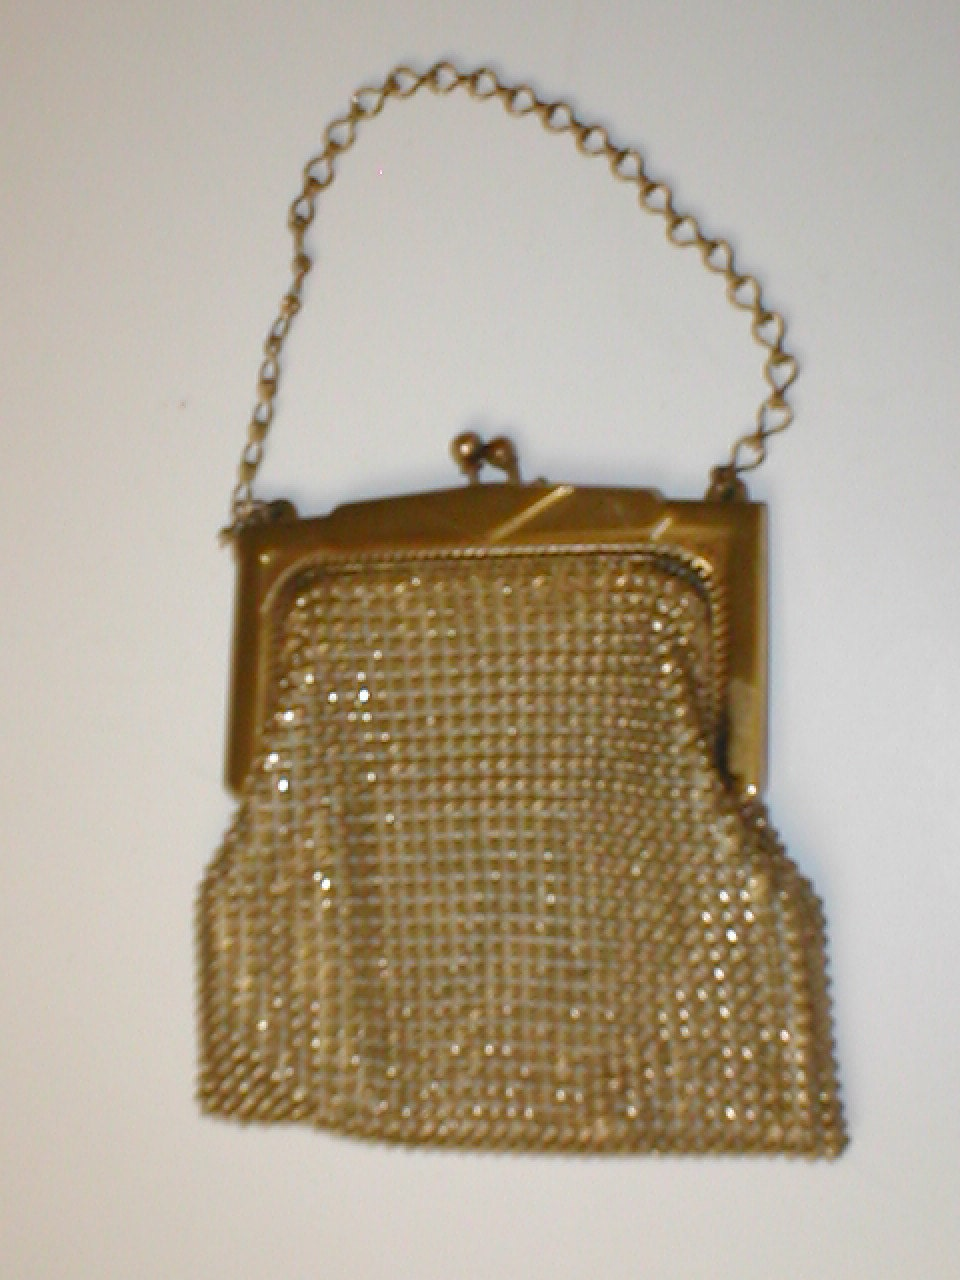 whiting and davis dating Whiting & davis, the world's leading mesh handbag manufacturer, offers beautiful high quality purses, evening clutches, shoulder bags and crossbody bags.